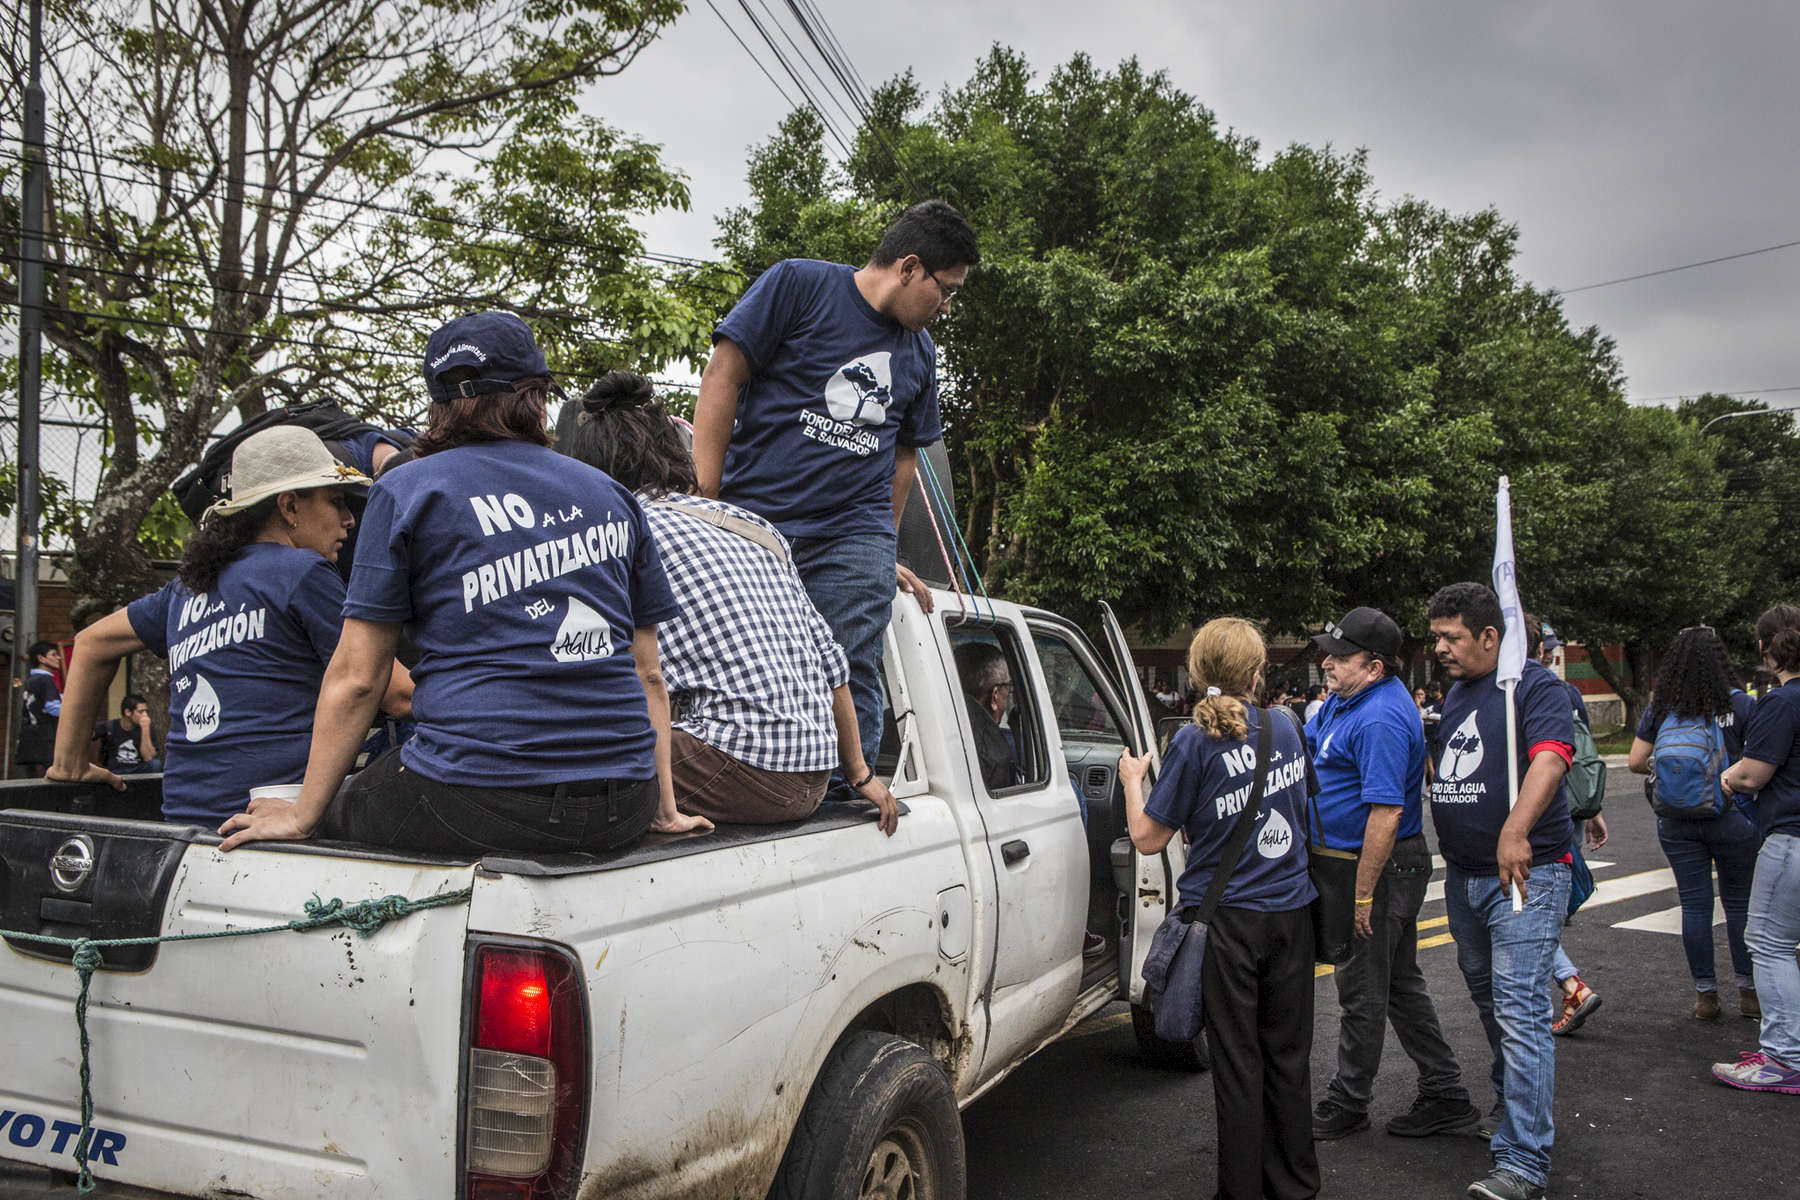 San Salvador, El Salvador- Protesters gather outside the office to pressure lawmakers from approving the right wing {quote}Comprehensive Water Law{quote} in San Salvador, El Salvador on Thursday June 21, 2018. (Jane Hahn)